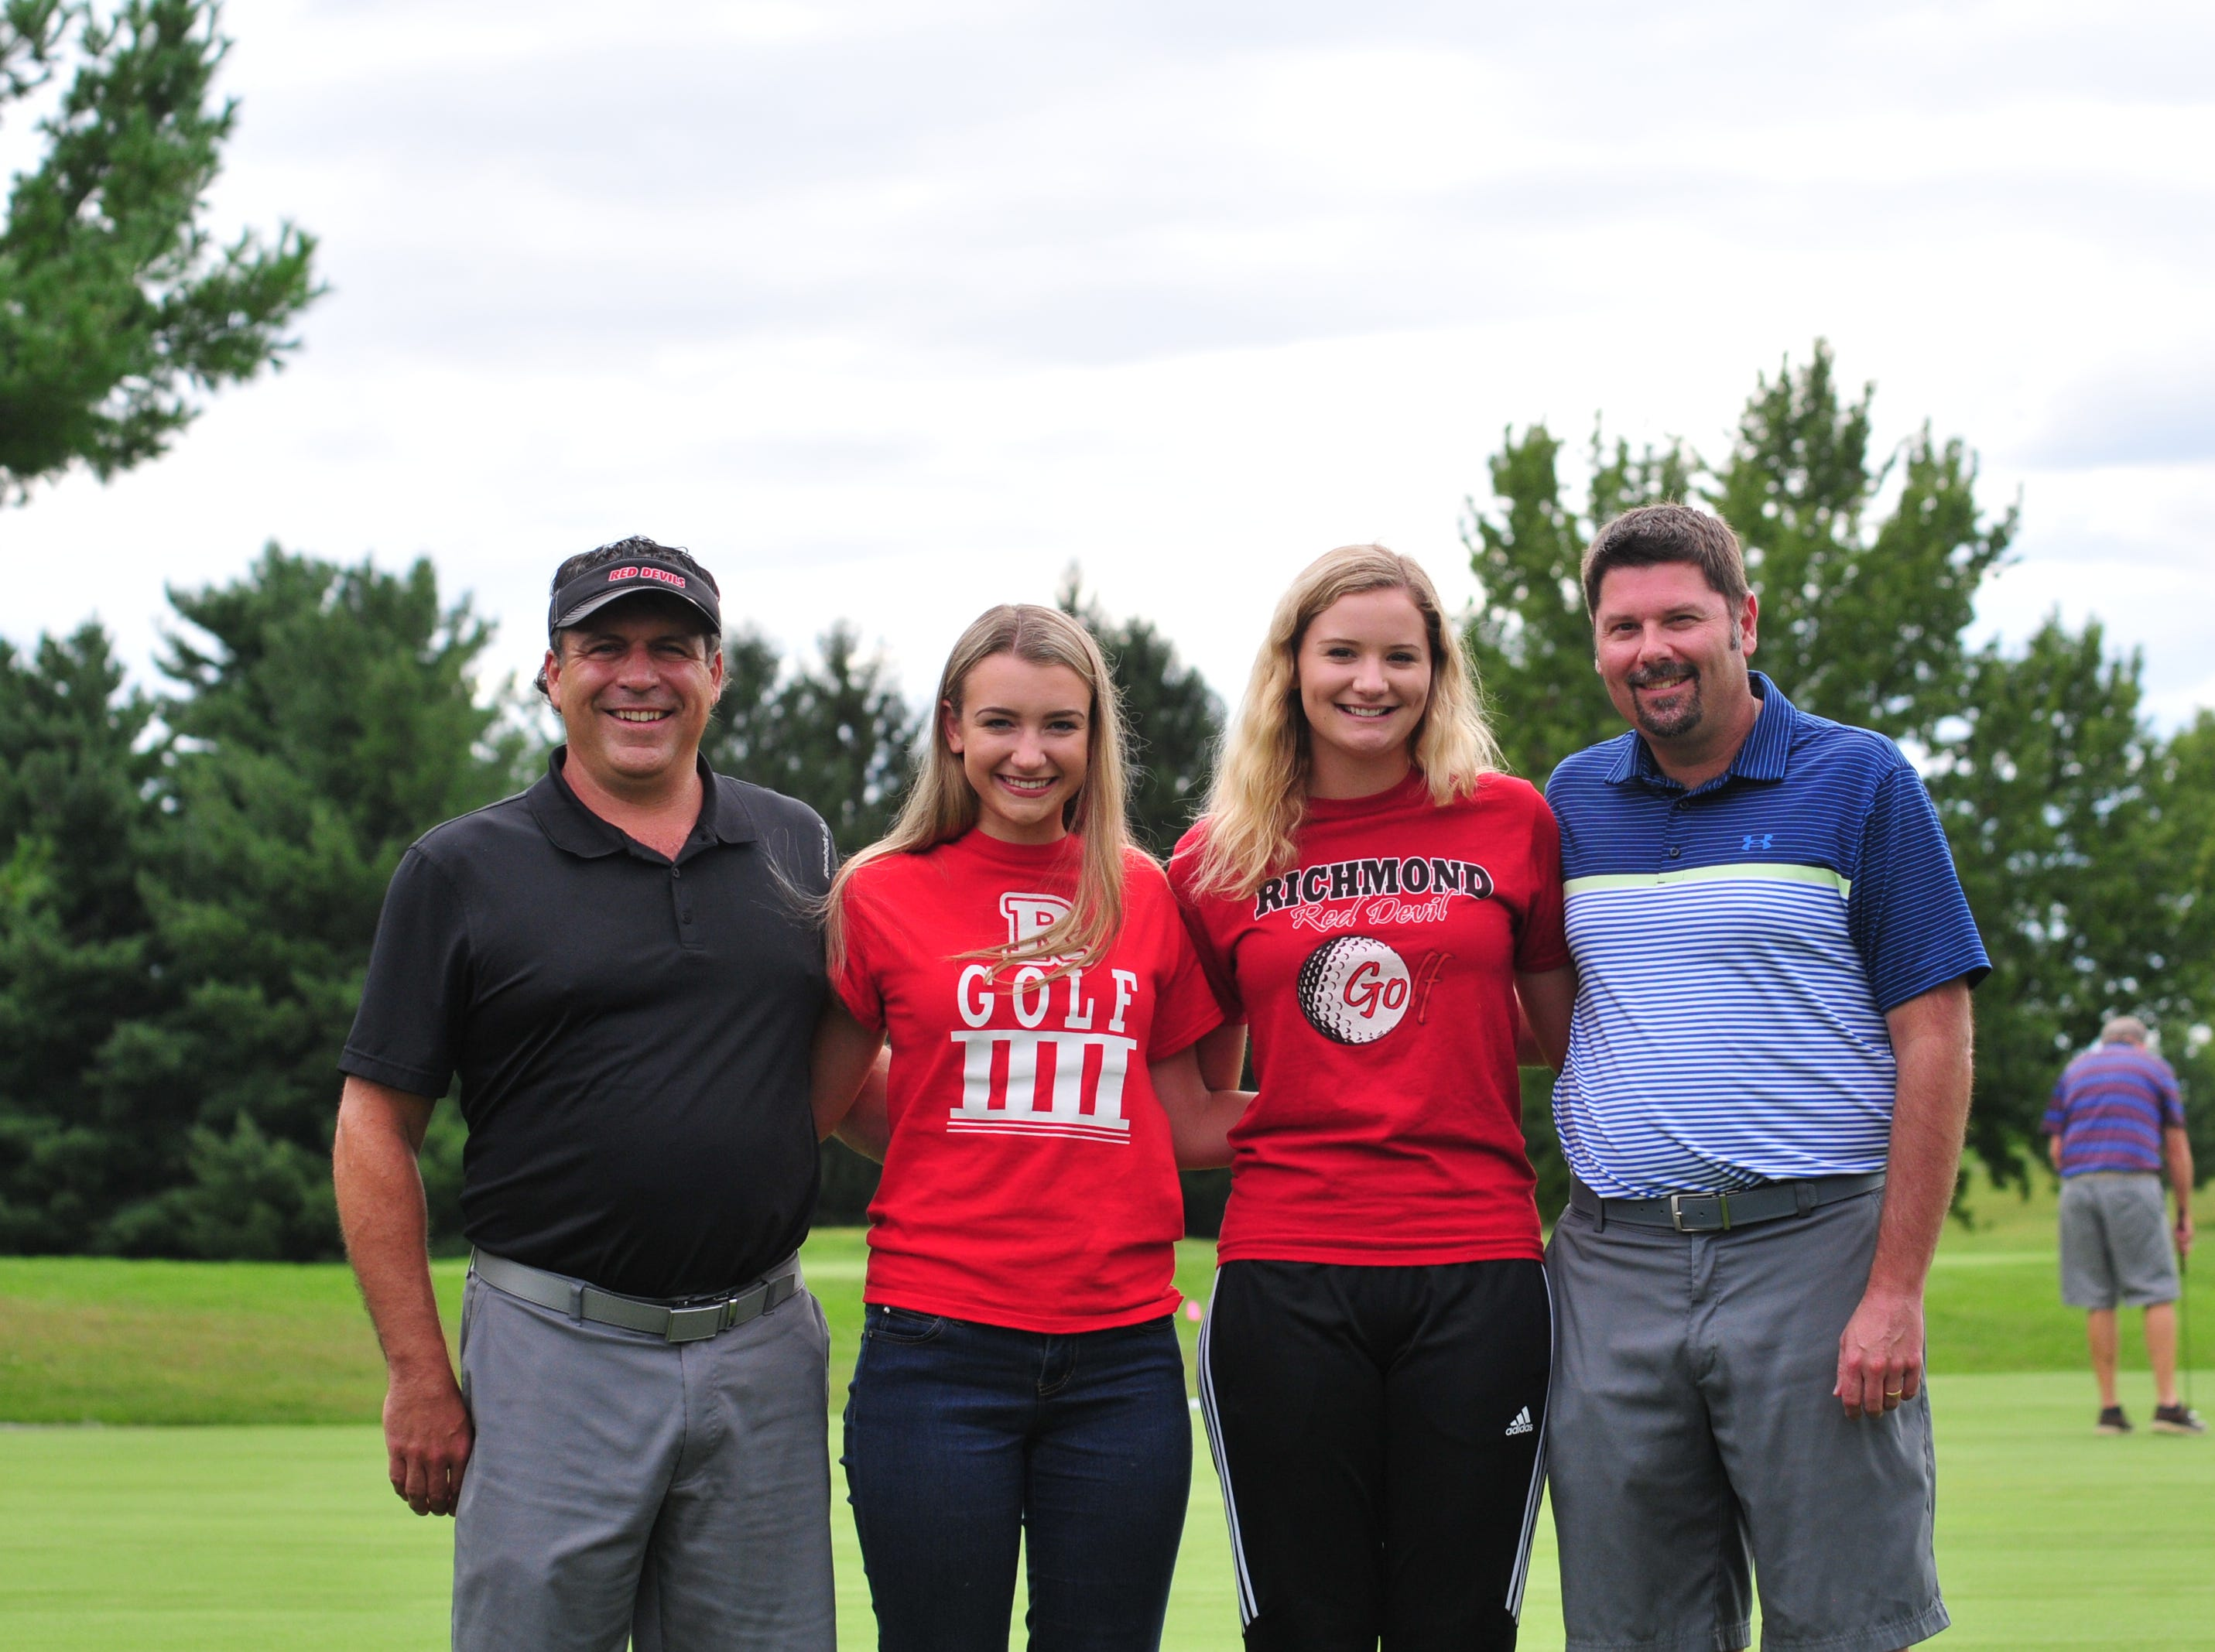 Richmond High School seniors Karissa Owens (second from left) and Jacey Cornett (third from left) led the Red Devils to an undefeated dual-match season. Karissa's father, Jesse Owens (left) started Richmond's Intermediate golf program, andJacey's father,  J. J. Cornett (right) was a member of Richmond's boys golf state title in 1993.